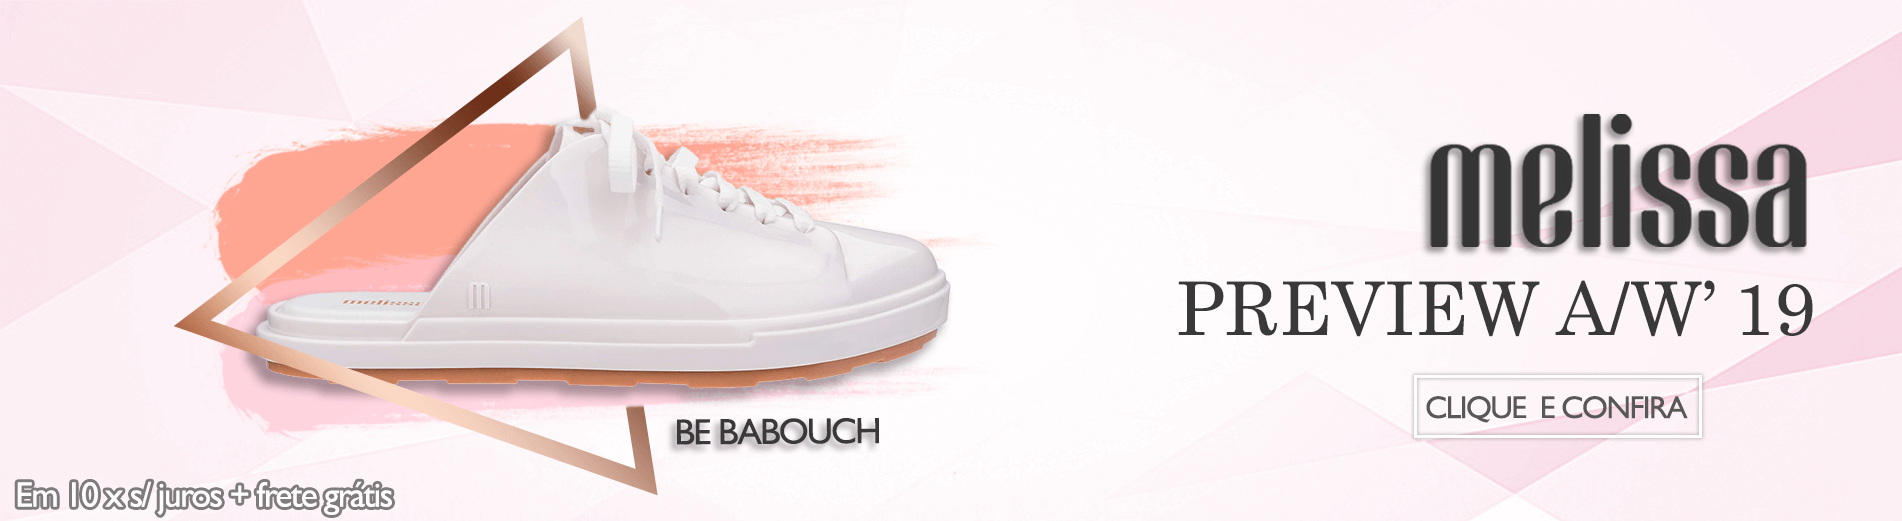 Be babouch